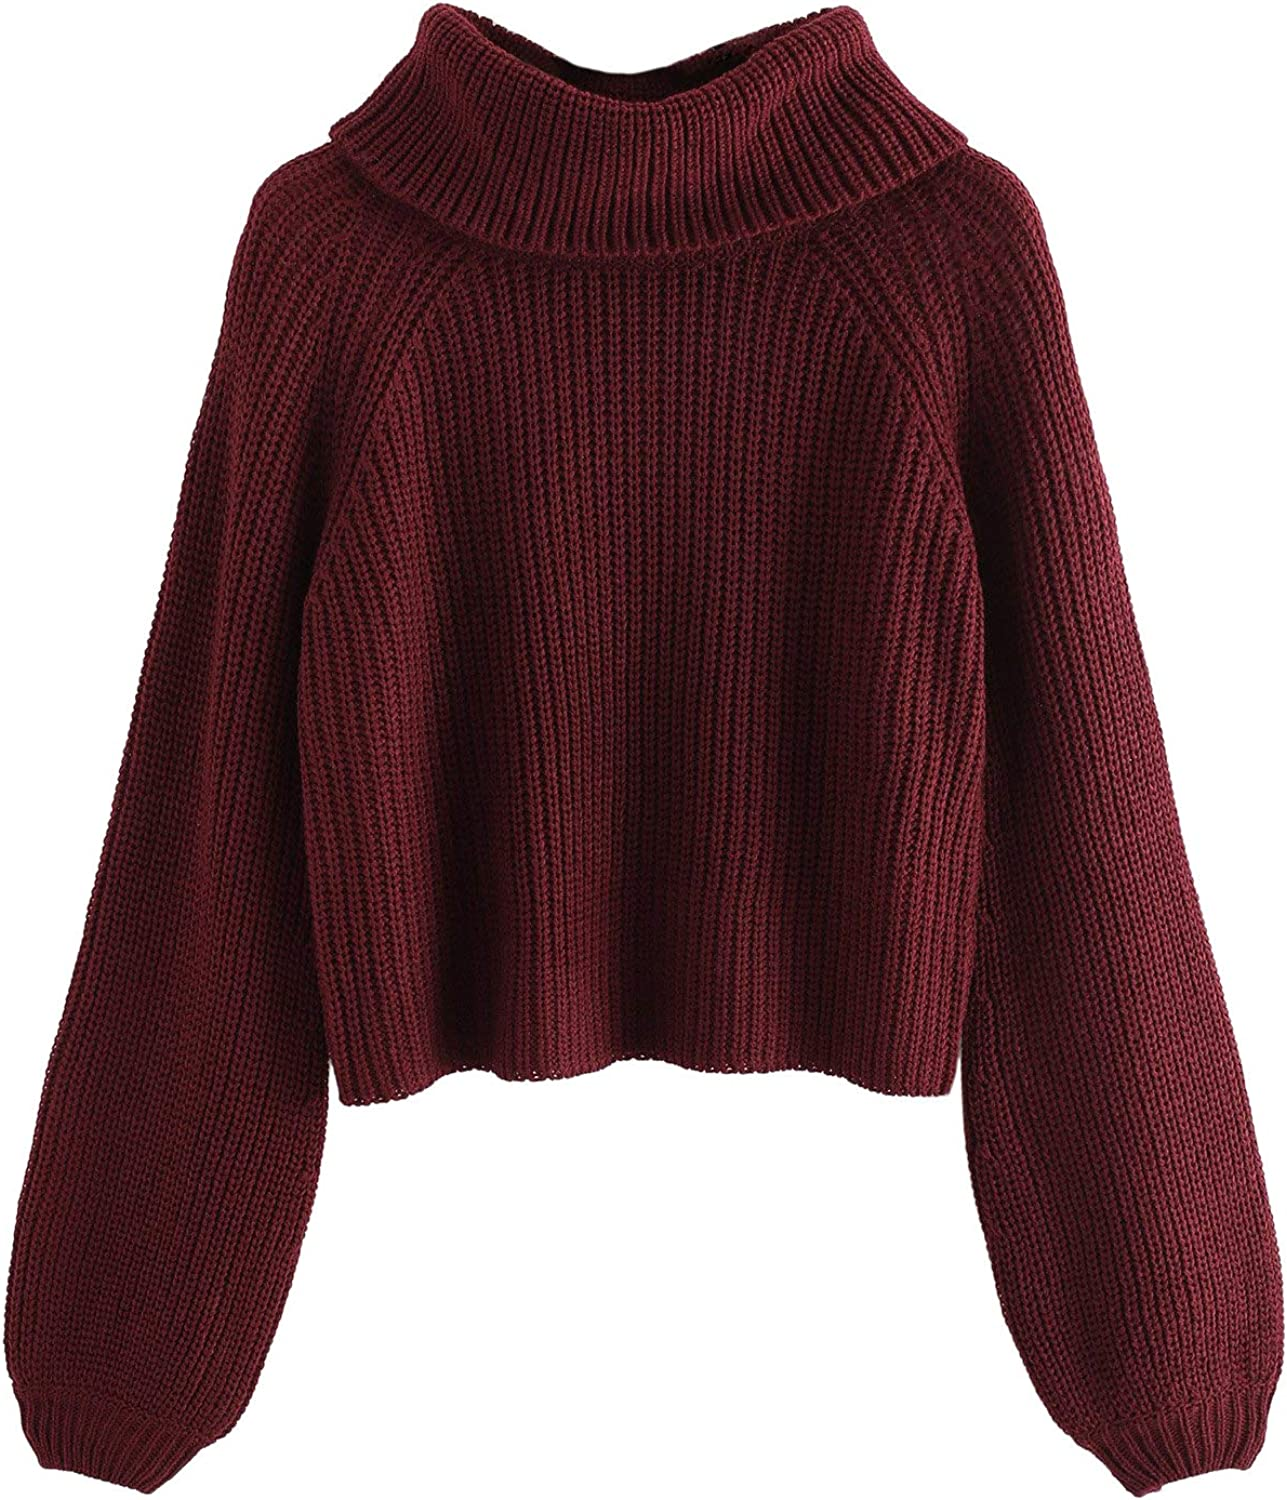 Milumia Women's High Neck Long Bishop Sleeve Jumper Sweater Turtleneck Crop Tops